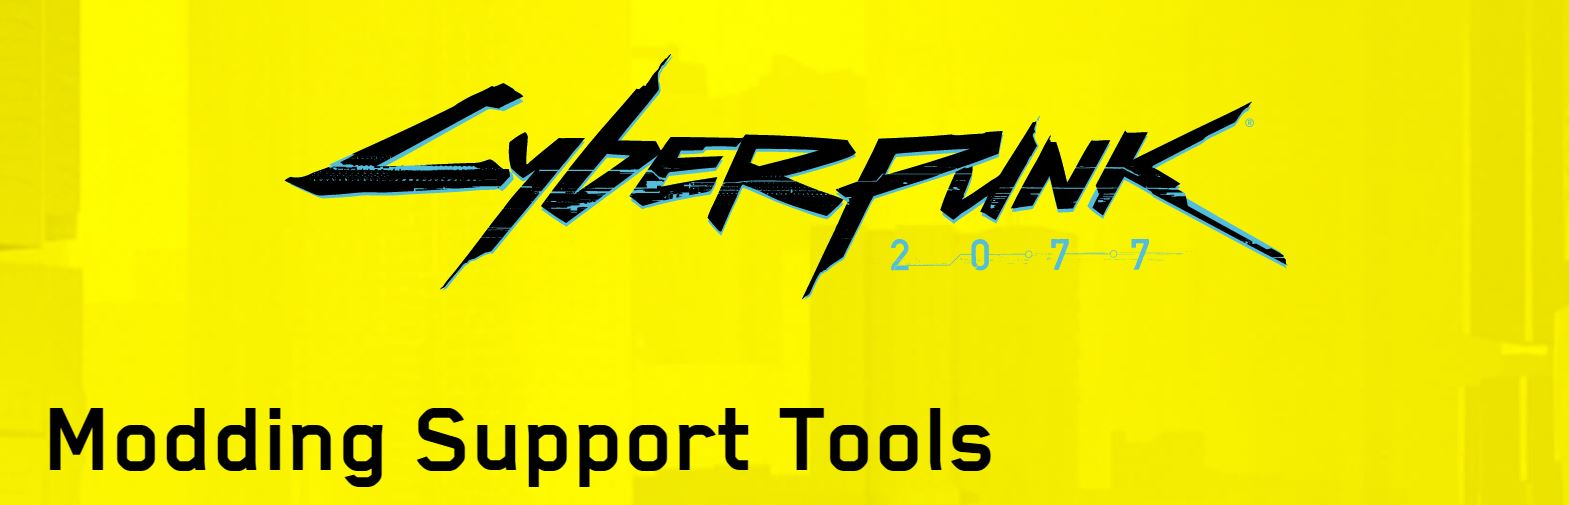 cyberpunk2077 modding support tools